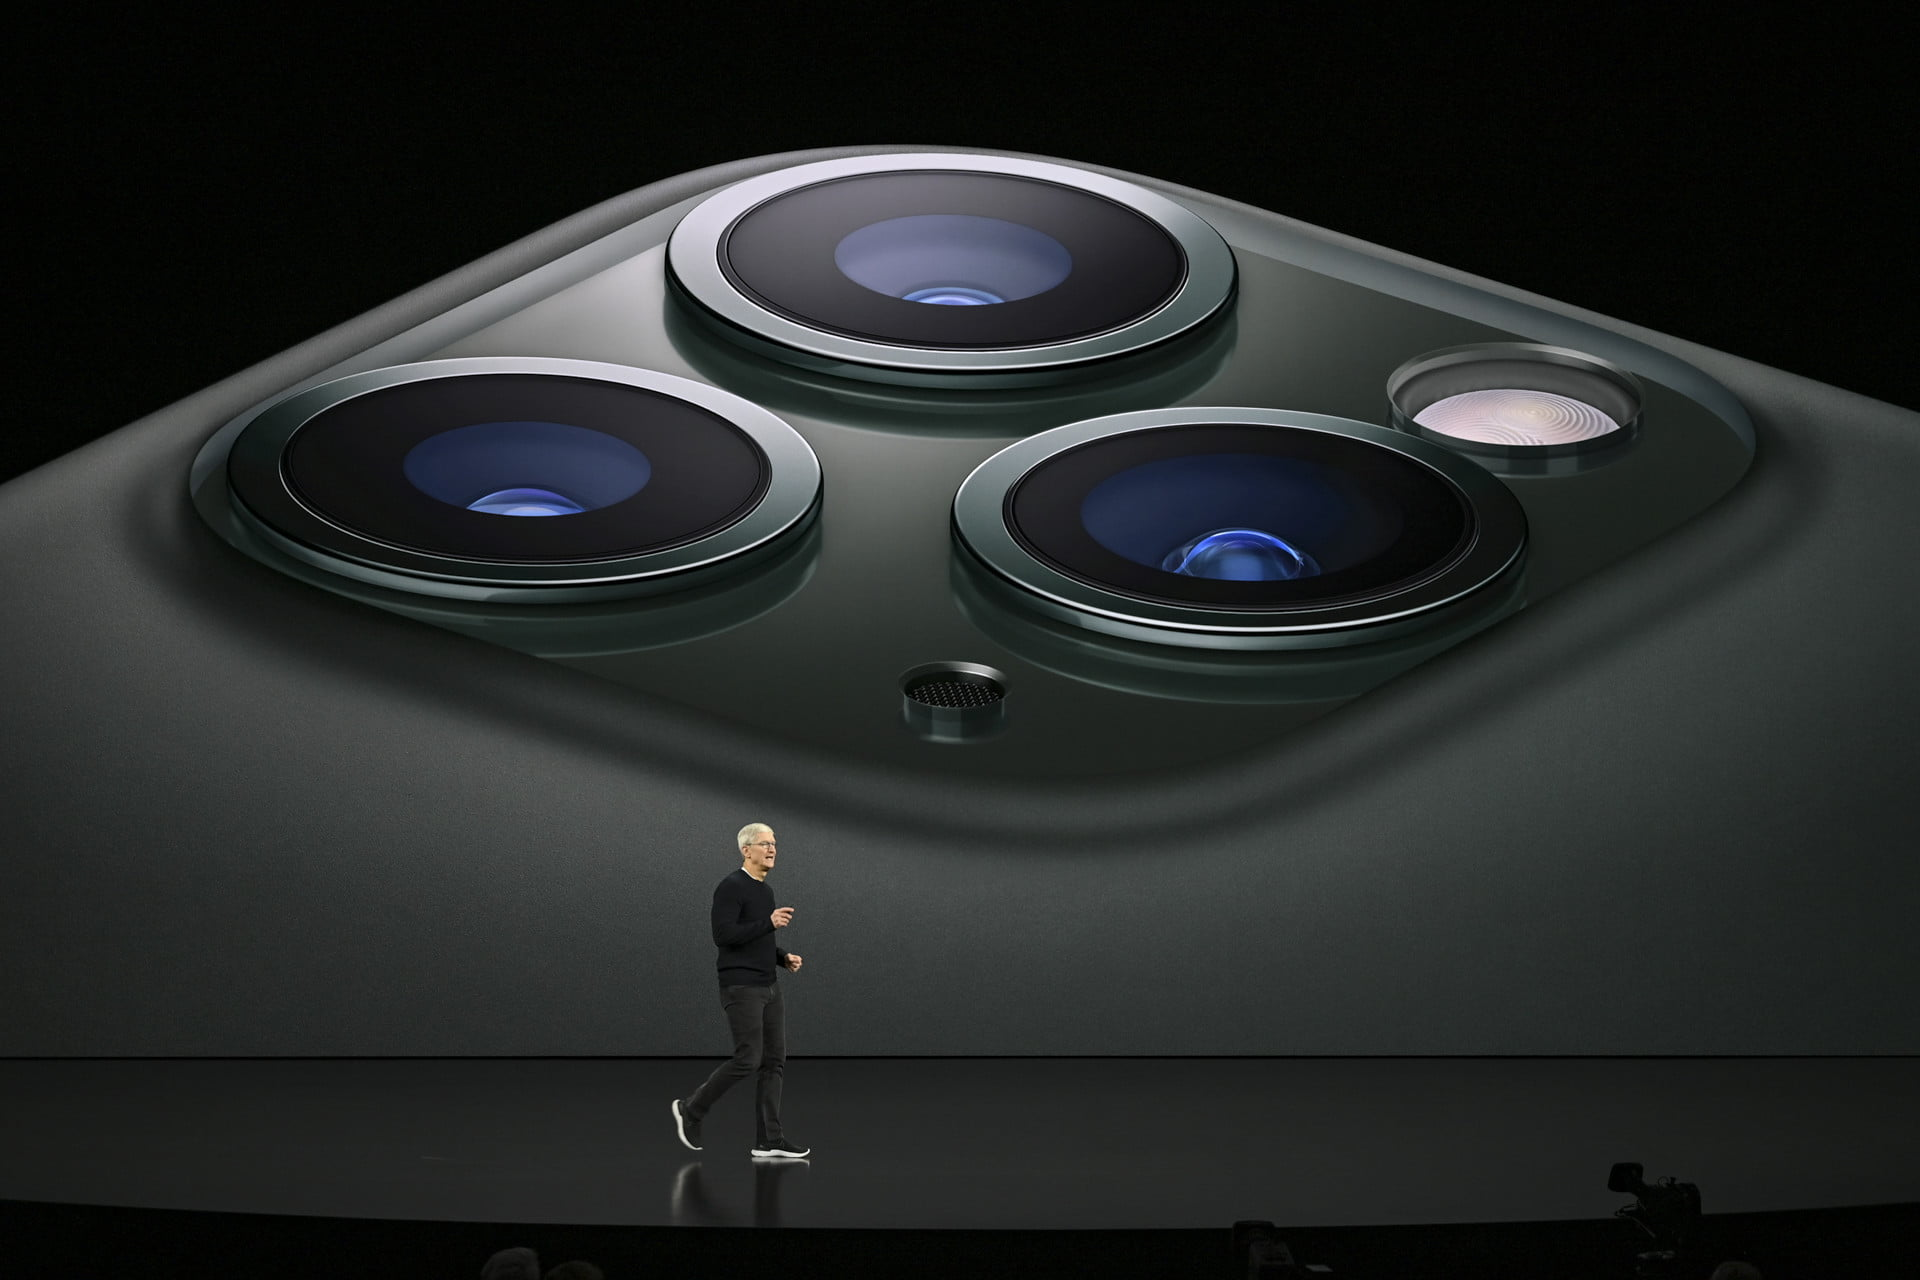 iPhone 11 Pro and Pro Max Camera Lenses | Apple September 2019 Event Keynote